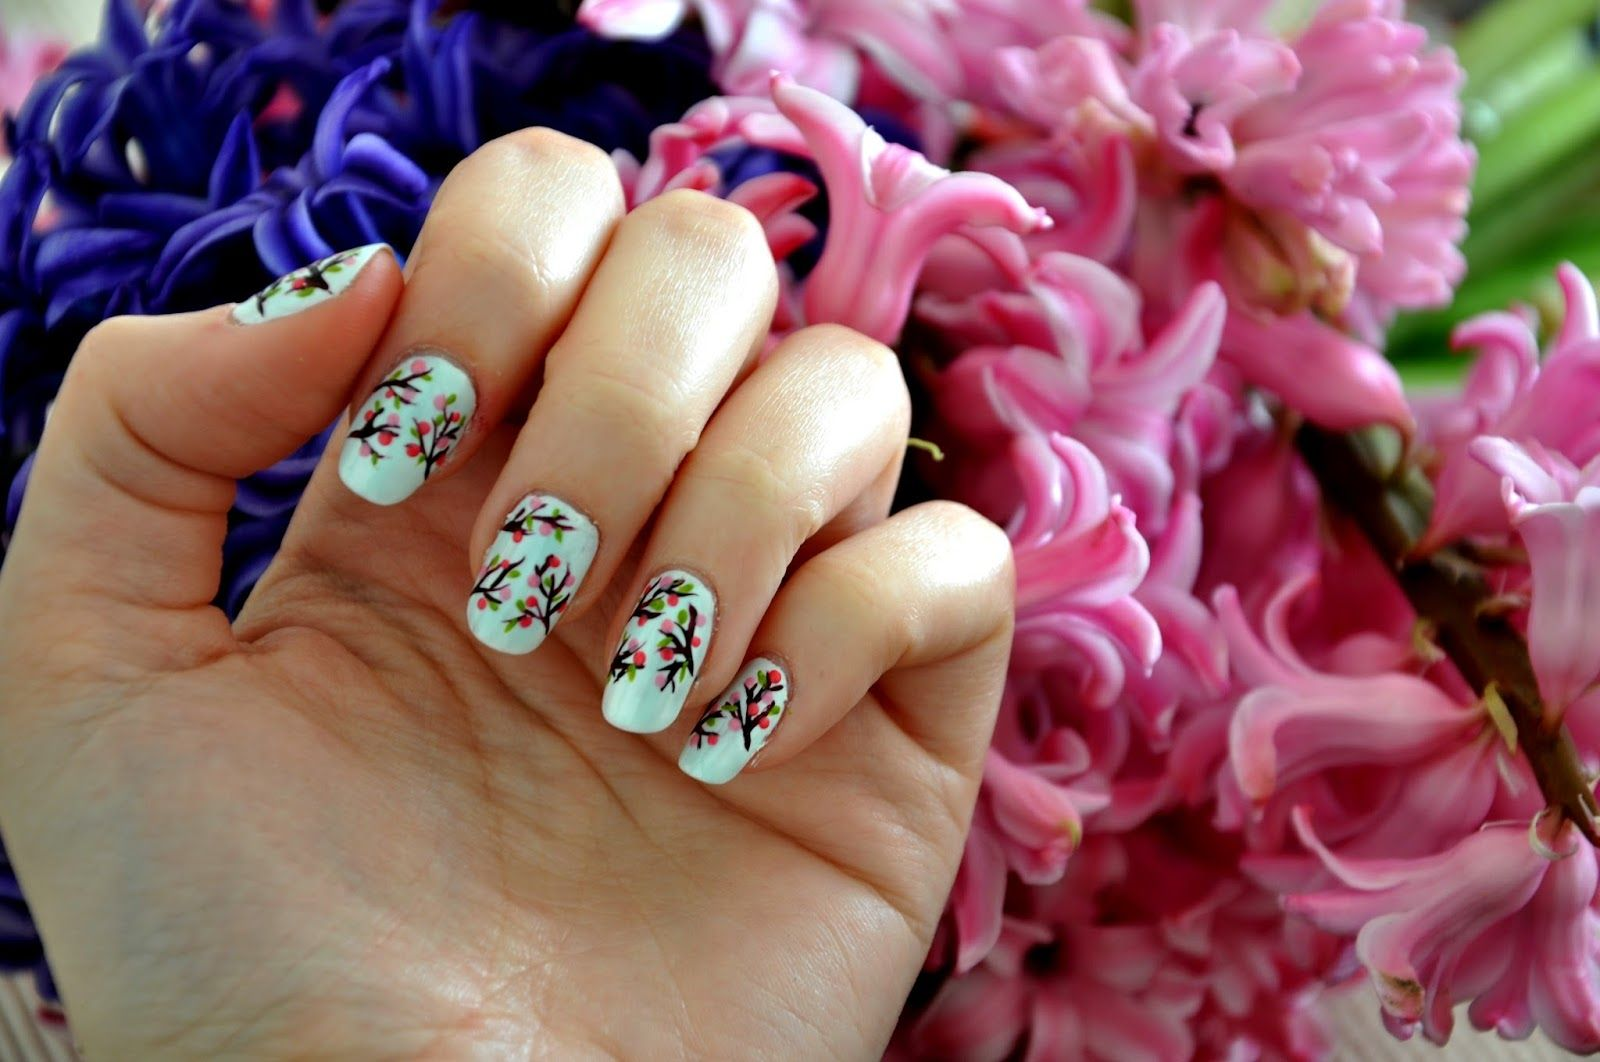 #spring#nails#blog#blogger